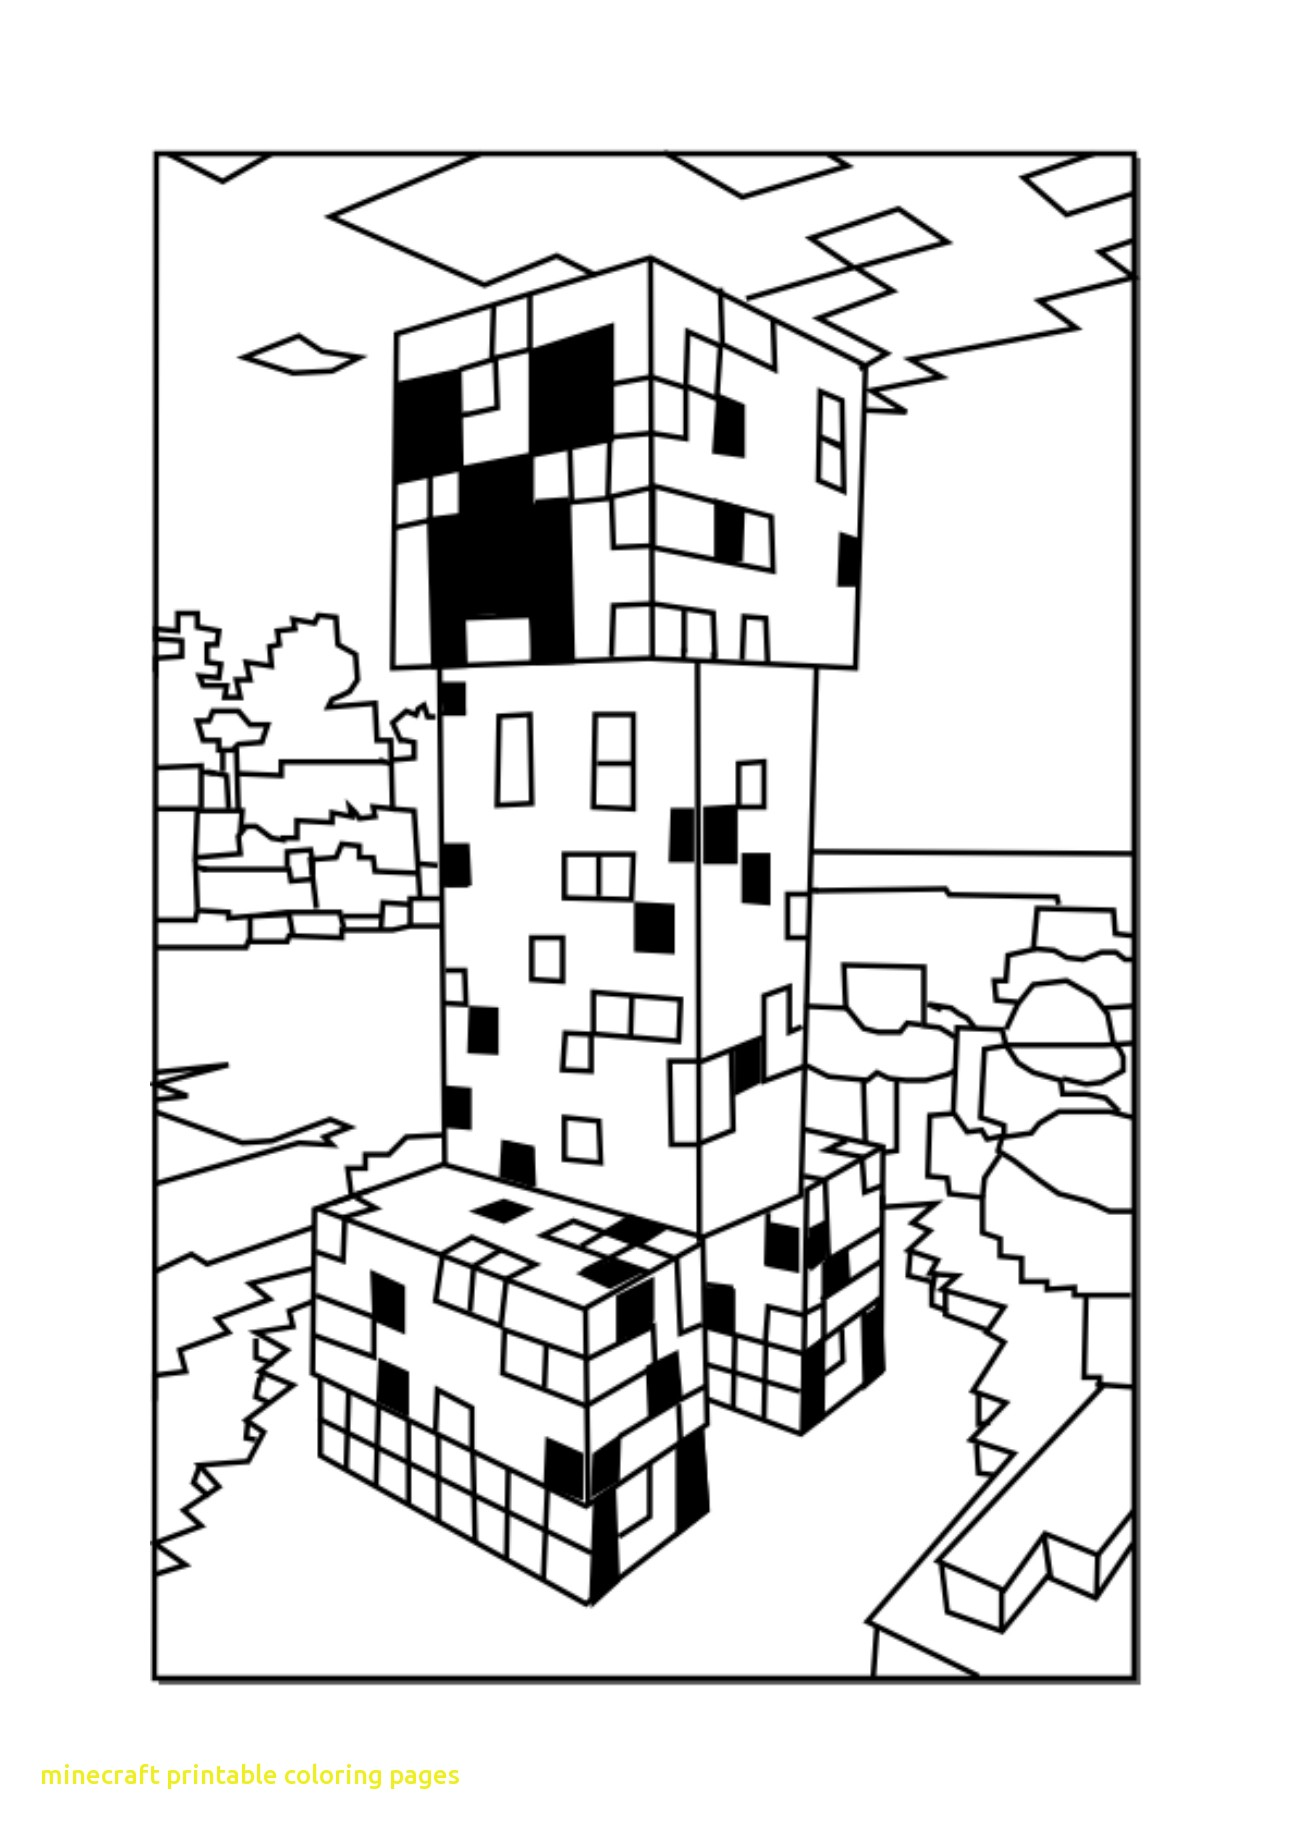 Creeper Minecraft Drawing At Getdrawings Com Free For Personal Use